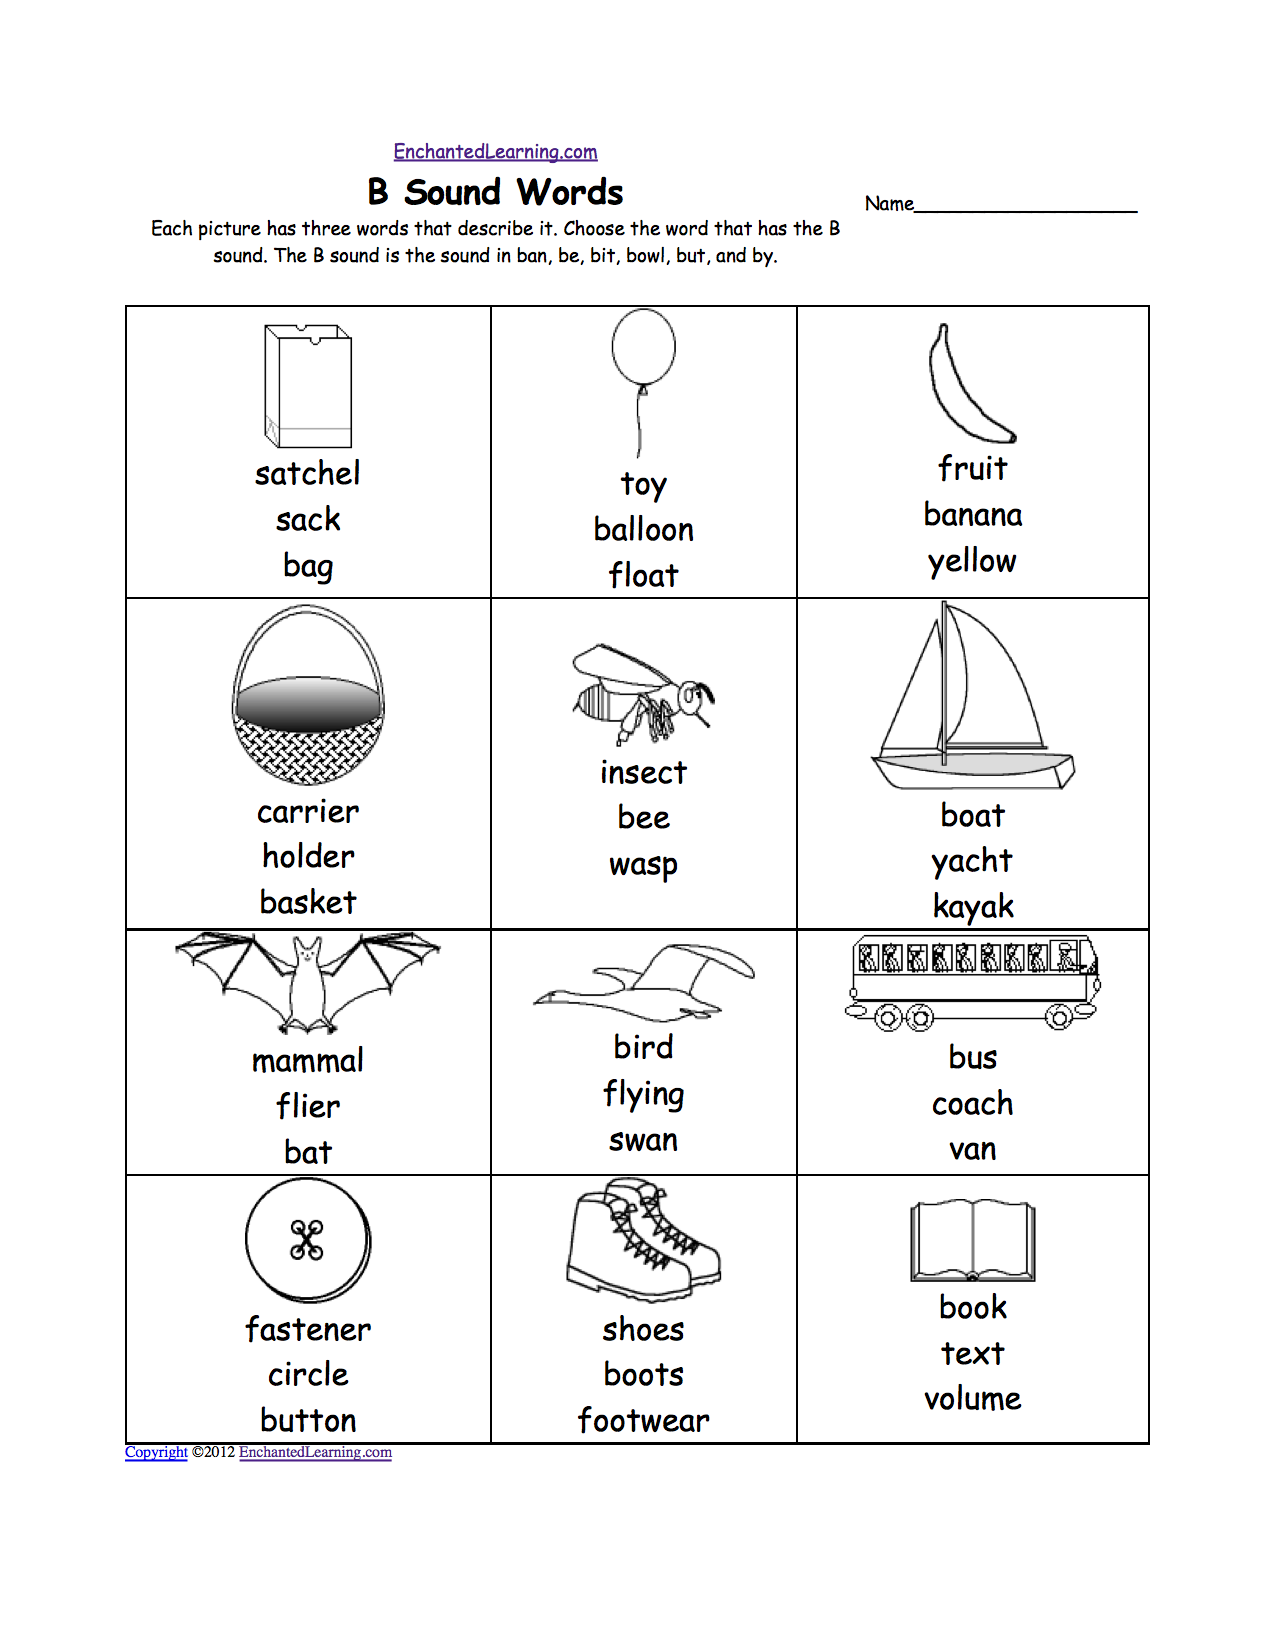 Weirdmailus  Unusual Phonics Worksheets Multiple Choice Worksheets To Print  With Handsome Quotbquot Sound Phonics Worksheet Multiple Choice Each Picture Has Three Words That Describe It Choose The Word That Has A Quotbquot Sound The Quotbquot Sound Is The Sound  With Amazing Blood Vessel Worksheet Also Free Writing Worksheets For Nd Grade In Addition Mood Tracking Worksheet And Body Fat Worksheet Female As Well As Very Hungry Caterpillar Worksheets Additionally Categorization Worksheets From Enchantedlearningcom With Weirdmailus  Handsome Phonics Worksheets Multiple Choice Worksheets To Print  With Amazing Quotbquot Sound Phonics Worksheet Multiple Choice Each Picture Has Three Words That Describe It Choose The Word That Has A Quotbquot Sound The Quotbquot Sound Is The Sound  And Unusual Blood Vessel Worksheet Also Free Writing Worksheets For Nd Grade In Addition Mood Tracking Worksheet From Enchantedlearningcom